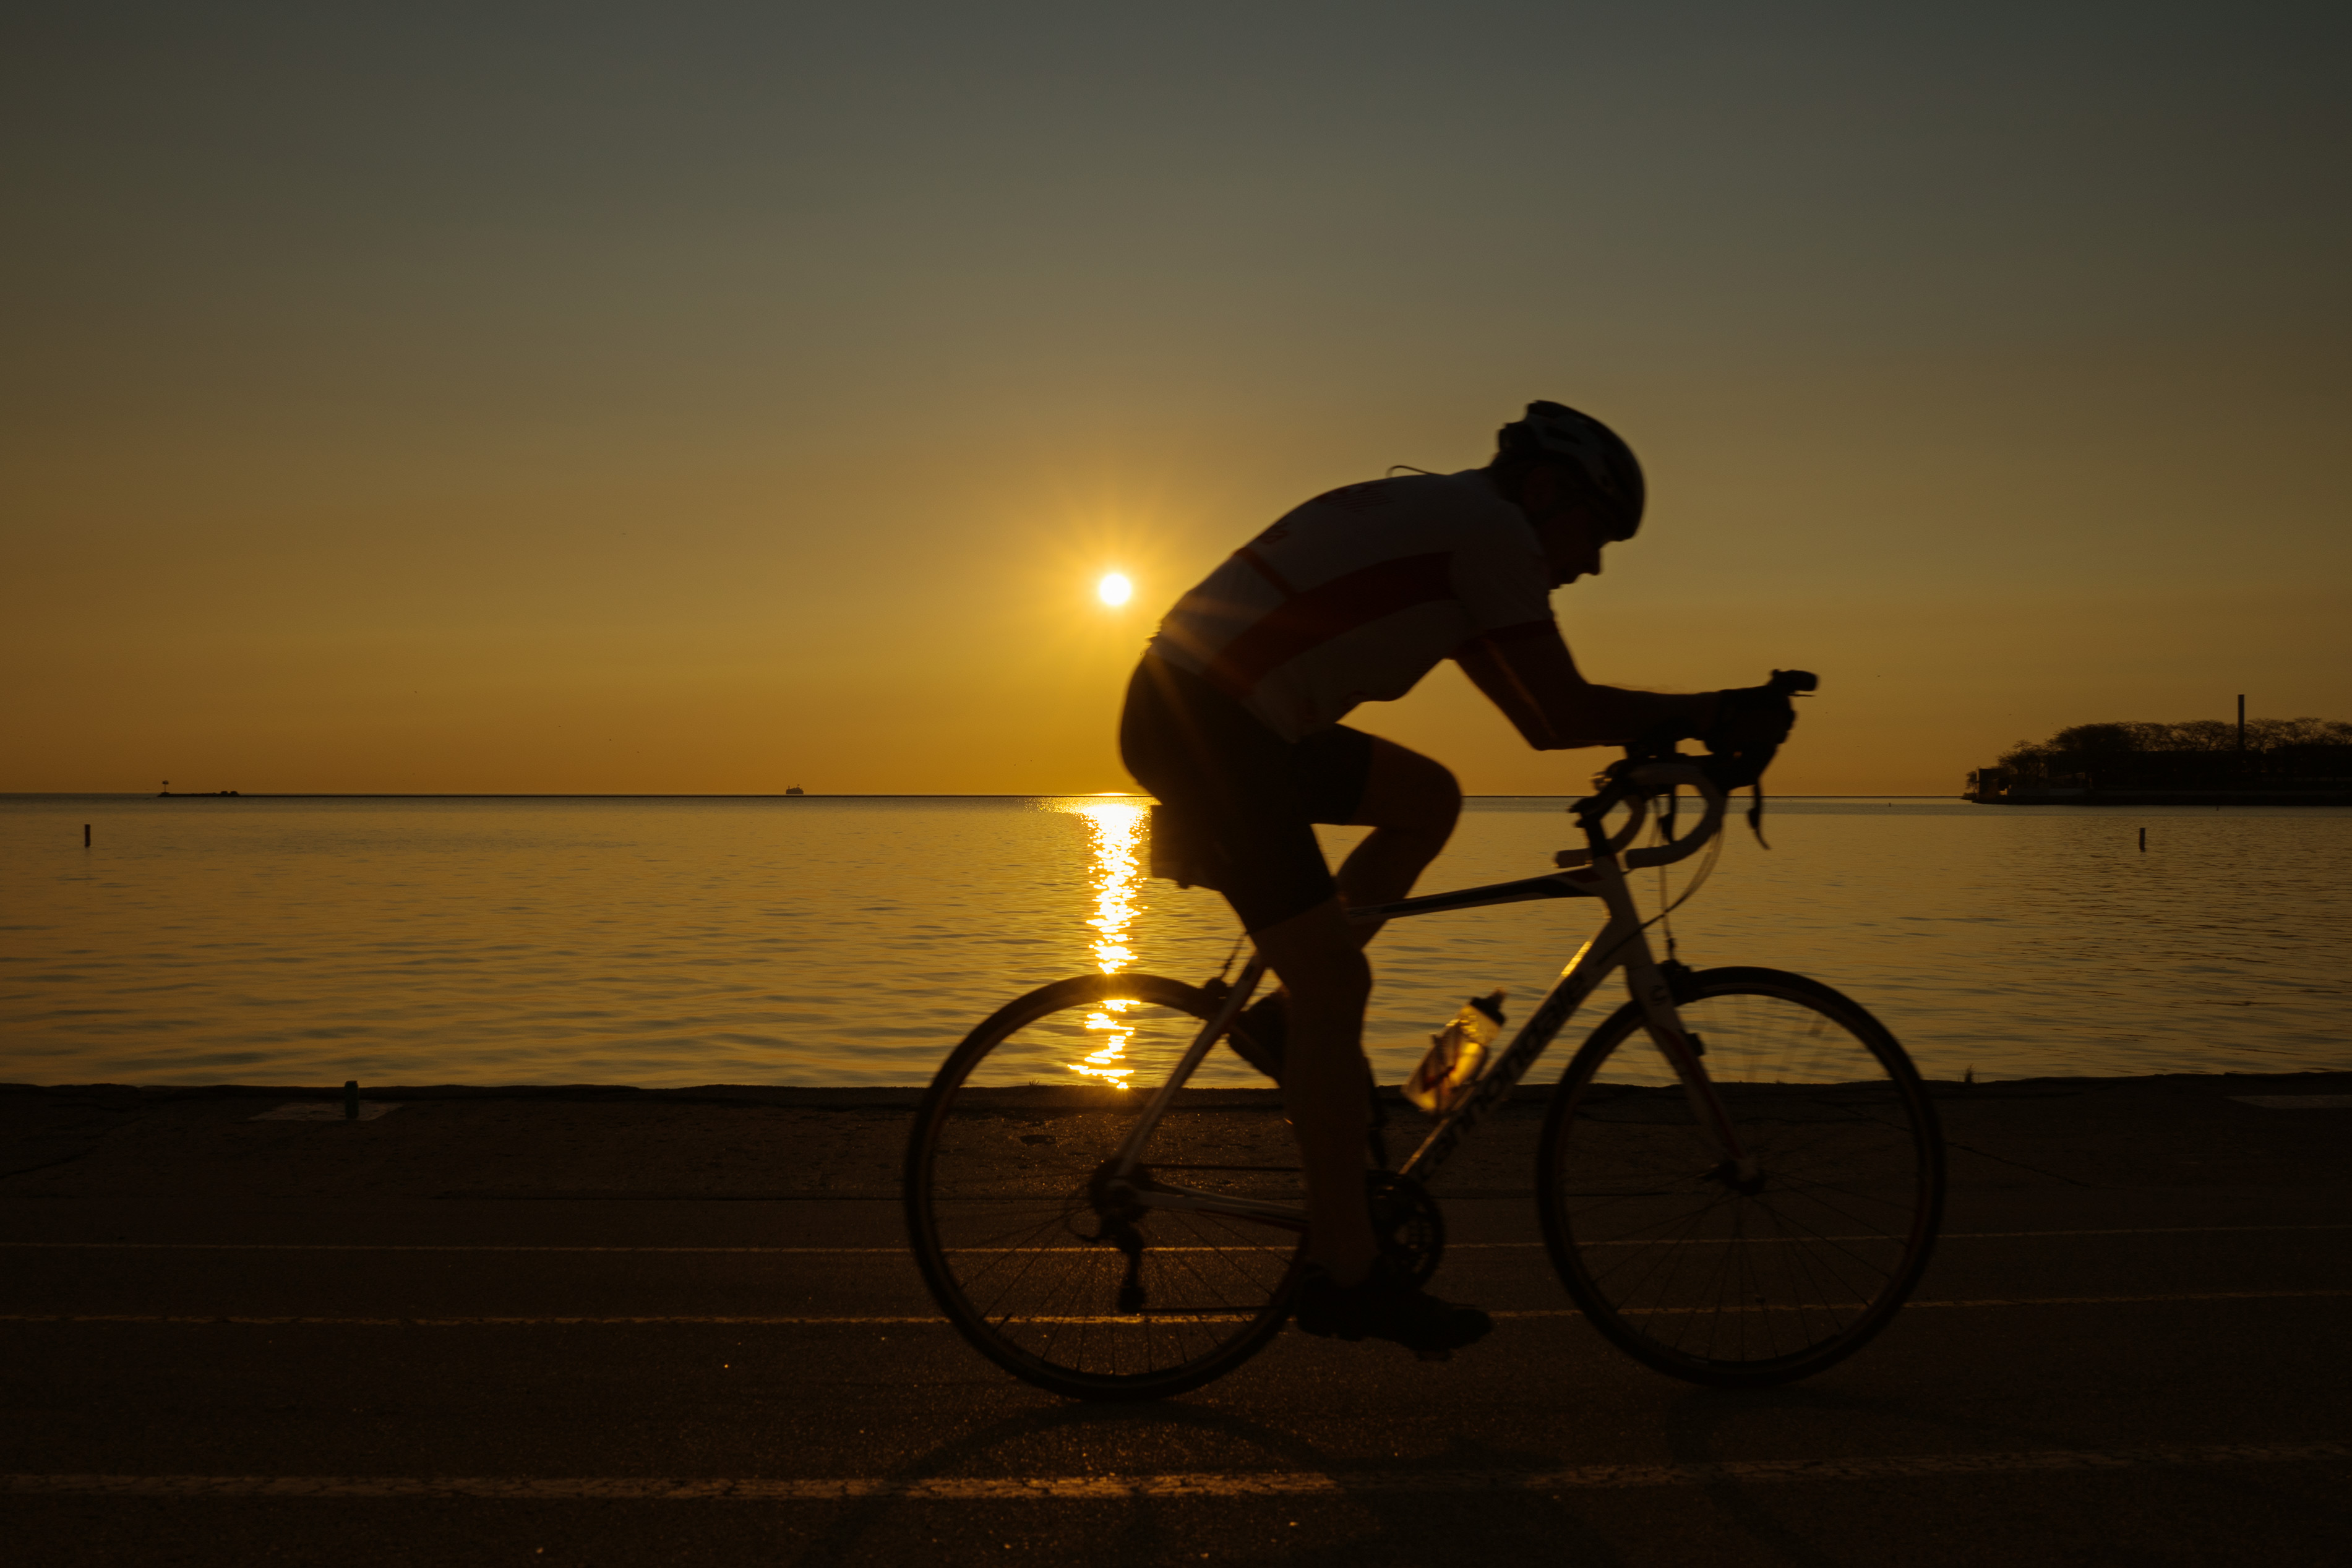 Chicago Lakeshore Sunrise Biker silhouette